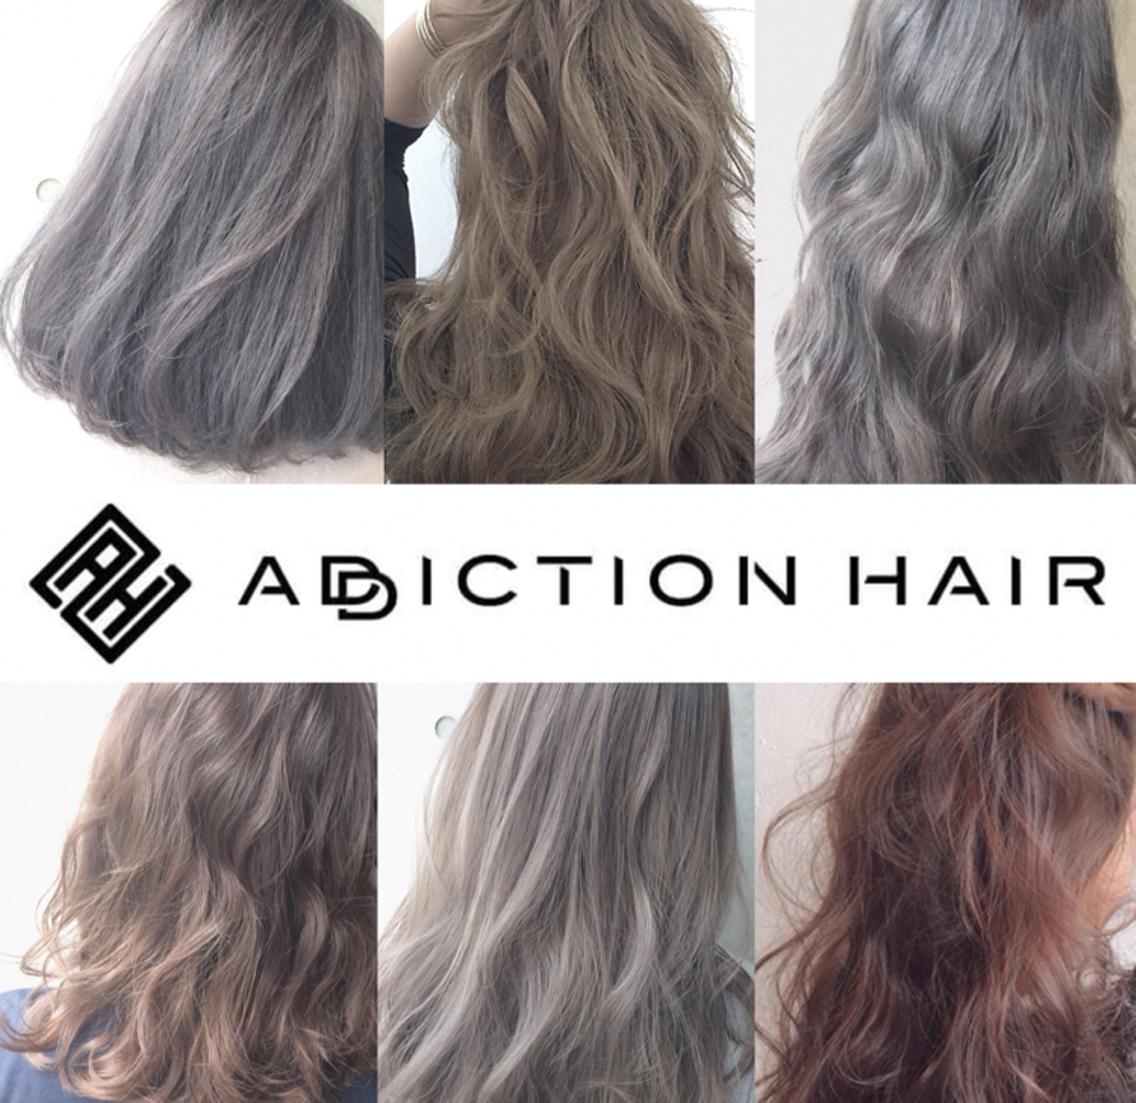 Realme/ADDICTION HAIR所属・ADDICTION HAIRの掲載